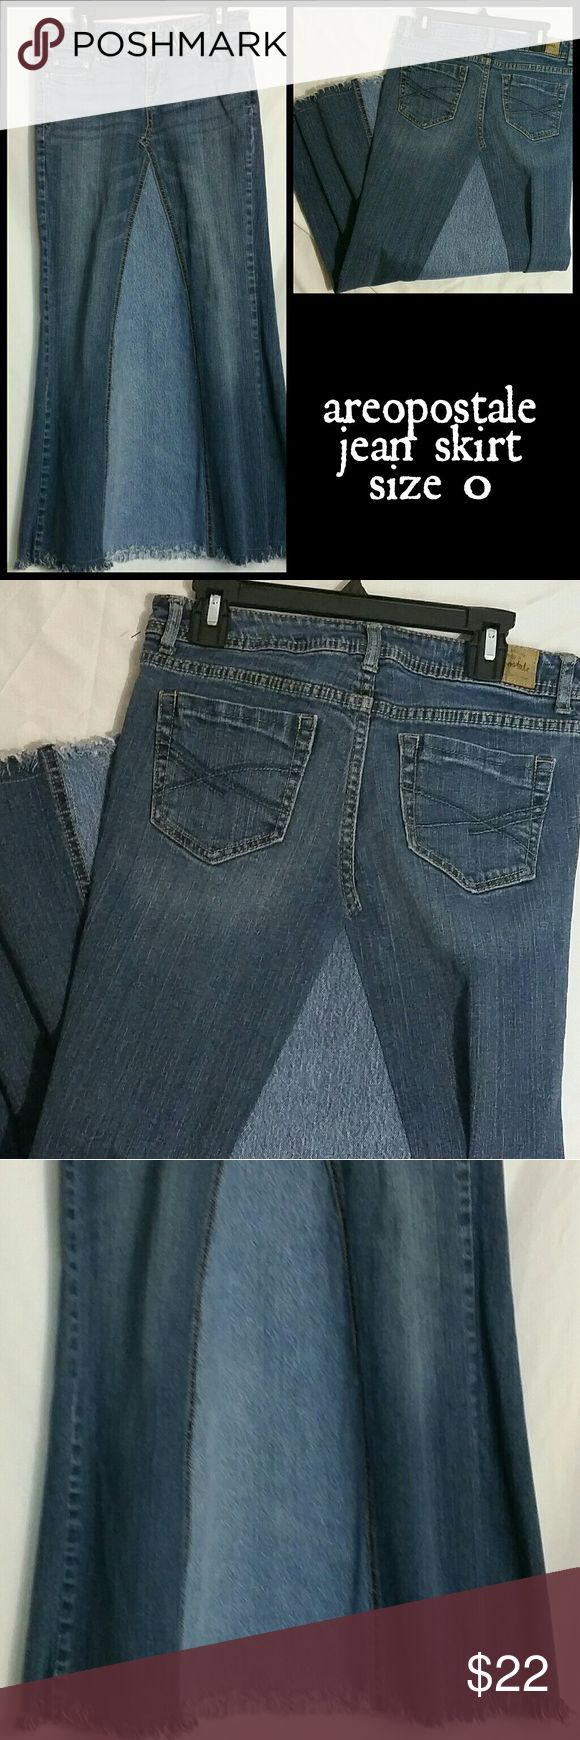 """Areopostale jean skirt size 0. Modest. No splits. Great skirt! Intentionally Frayed hem won't need ironing, just wash and go. Great for school mornings. Modest. No splits. Spready enough to run and play softball in! Great for church camp. Measurements taken when lying flat :  waist 14"""" hips 14.5"""" length 34 Aeropostale Skirts Maxi"""